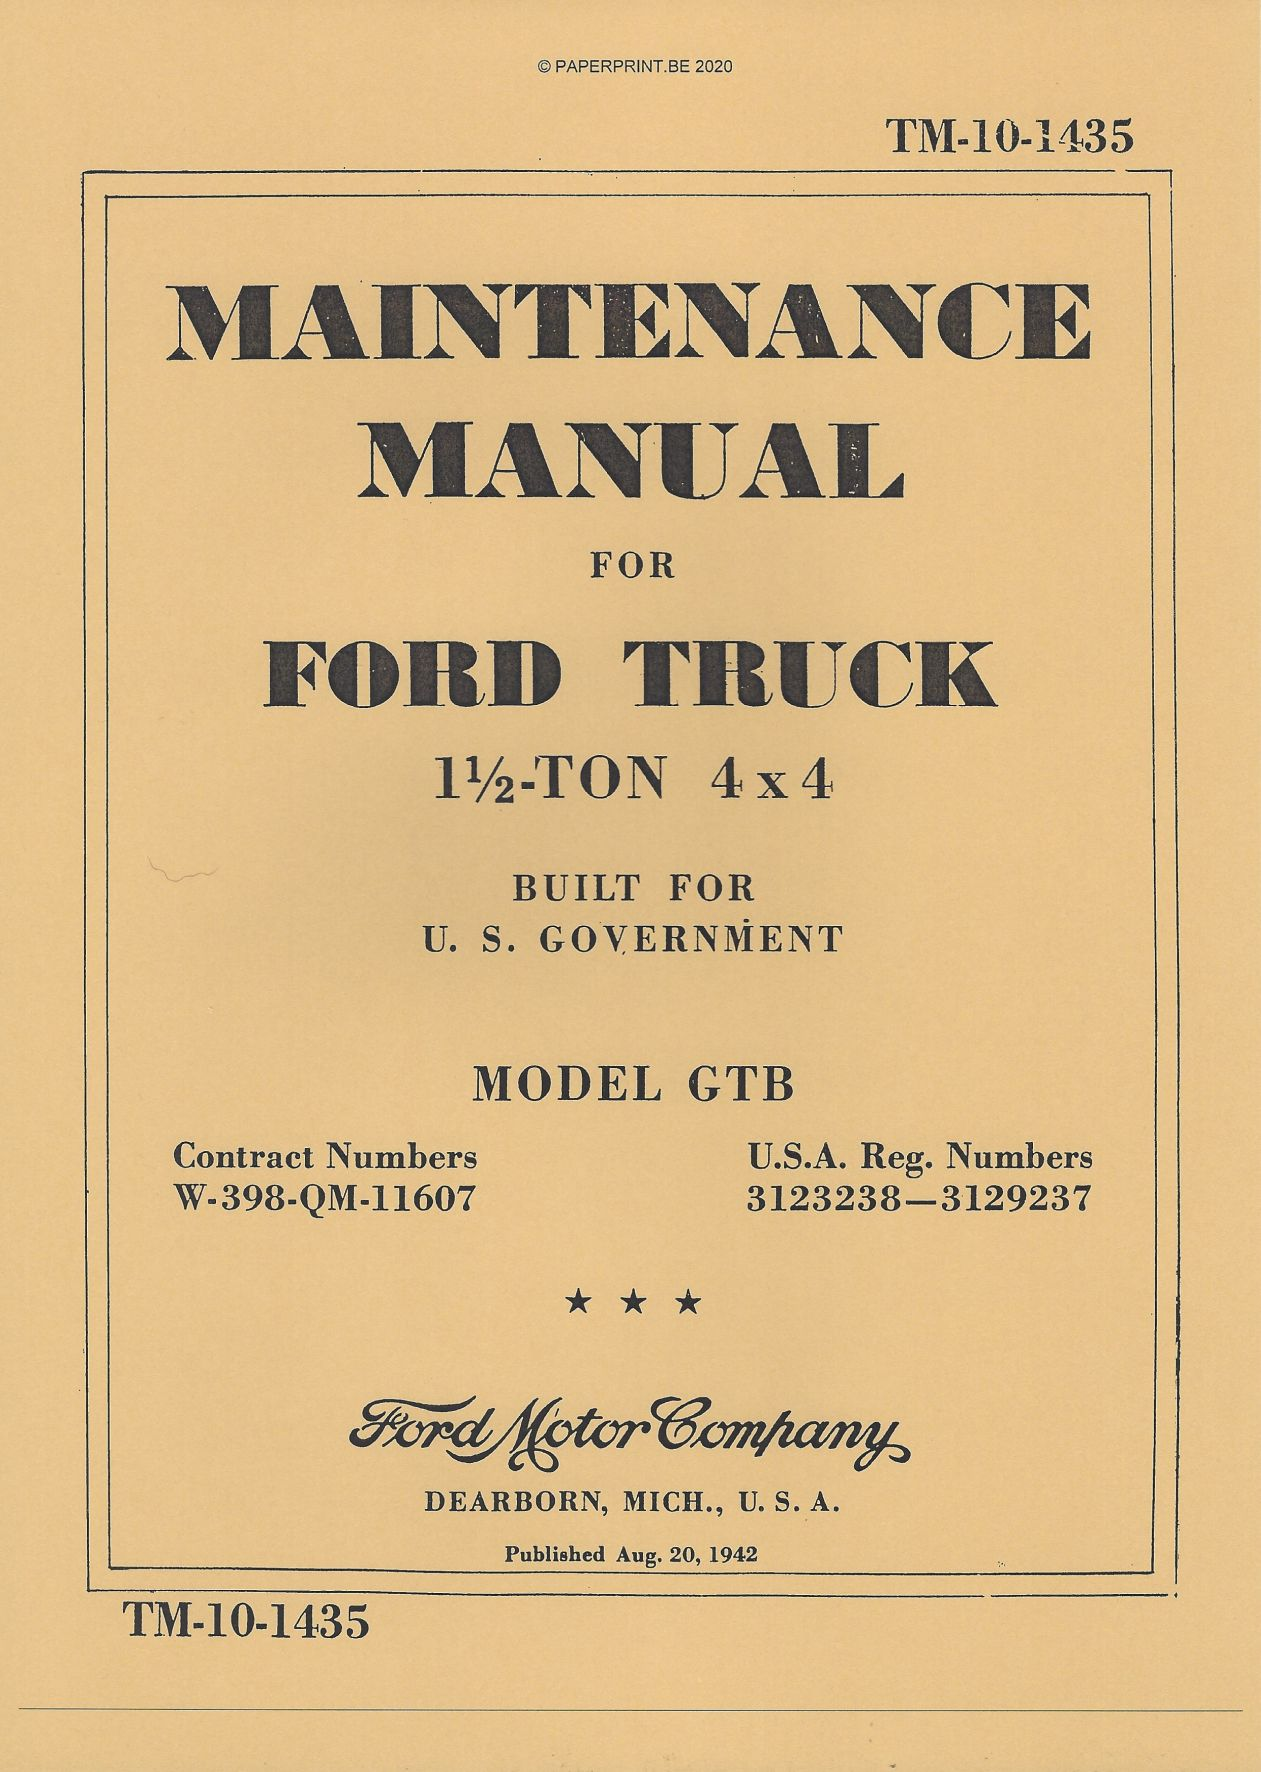 TM 10-1435 US FORD GTB MAINTENACE MANUAL US